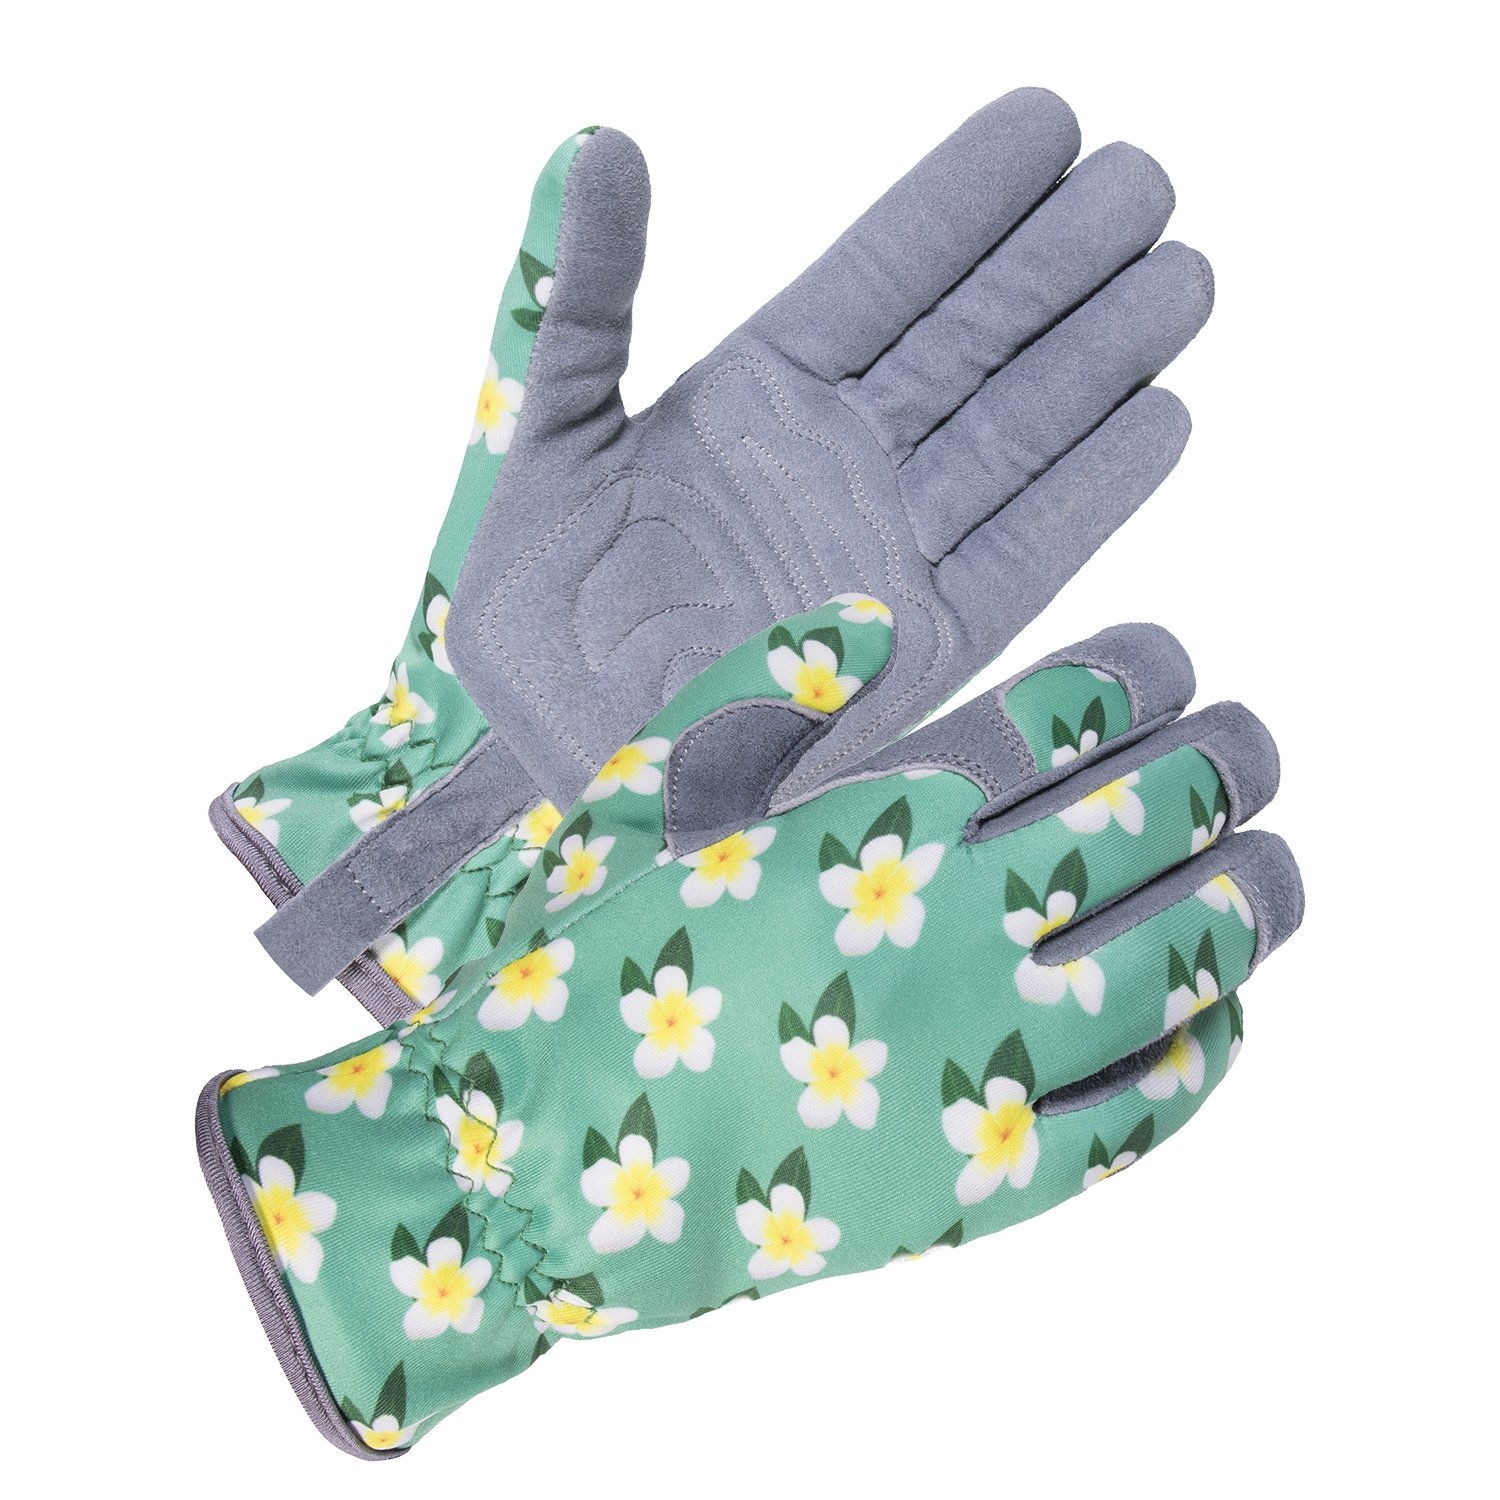 SKYDEER Womens Gardening Gloves with Deerskin Leather Suede for Yard Work, Rose Pruning and Daily Work by SKYDEER (Image #1)